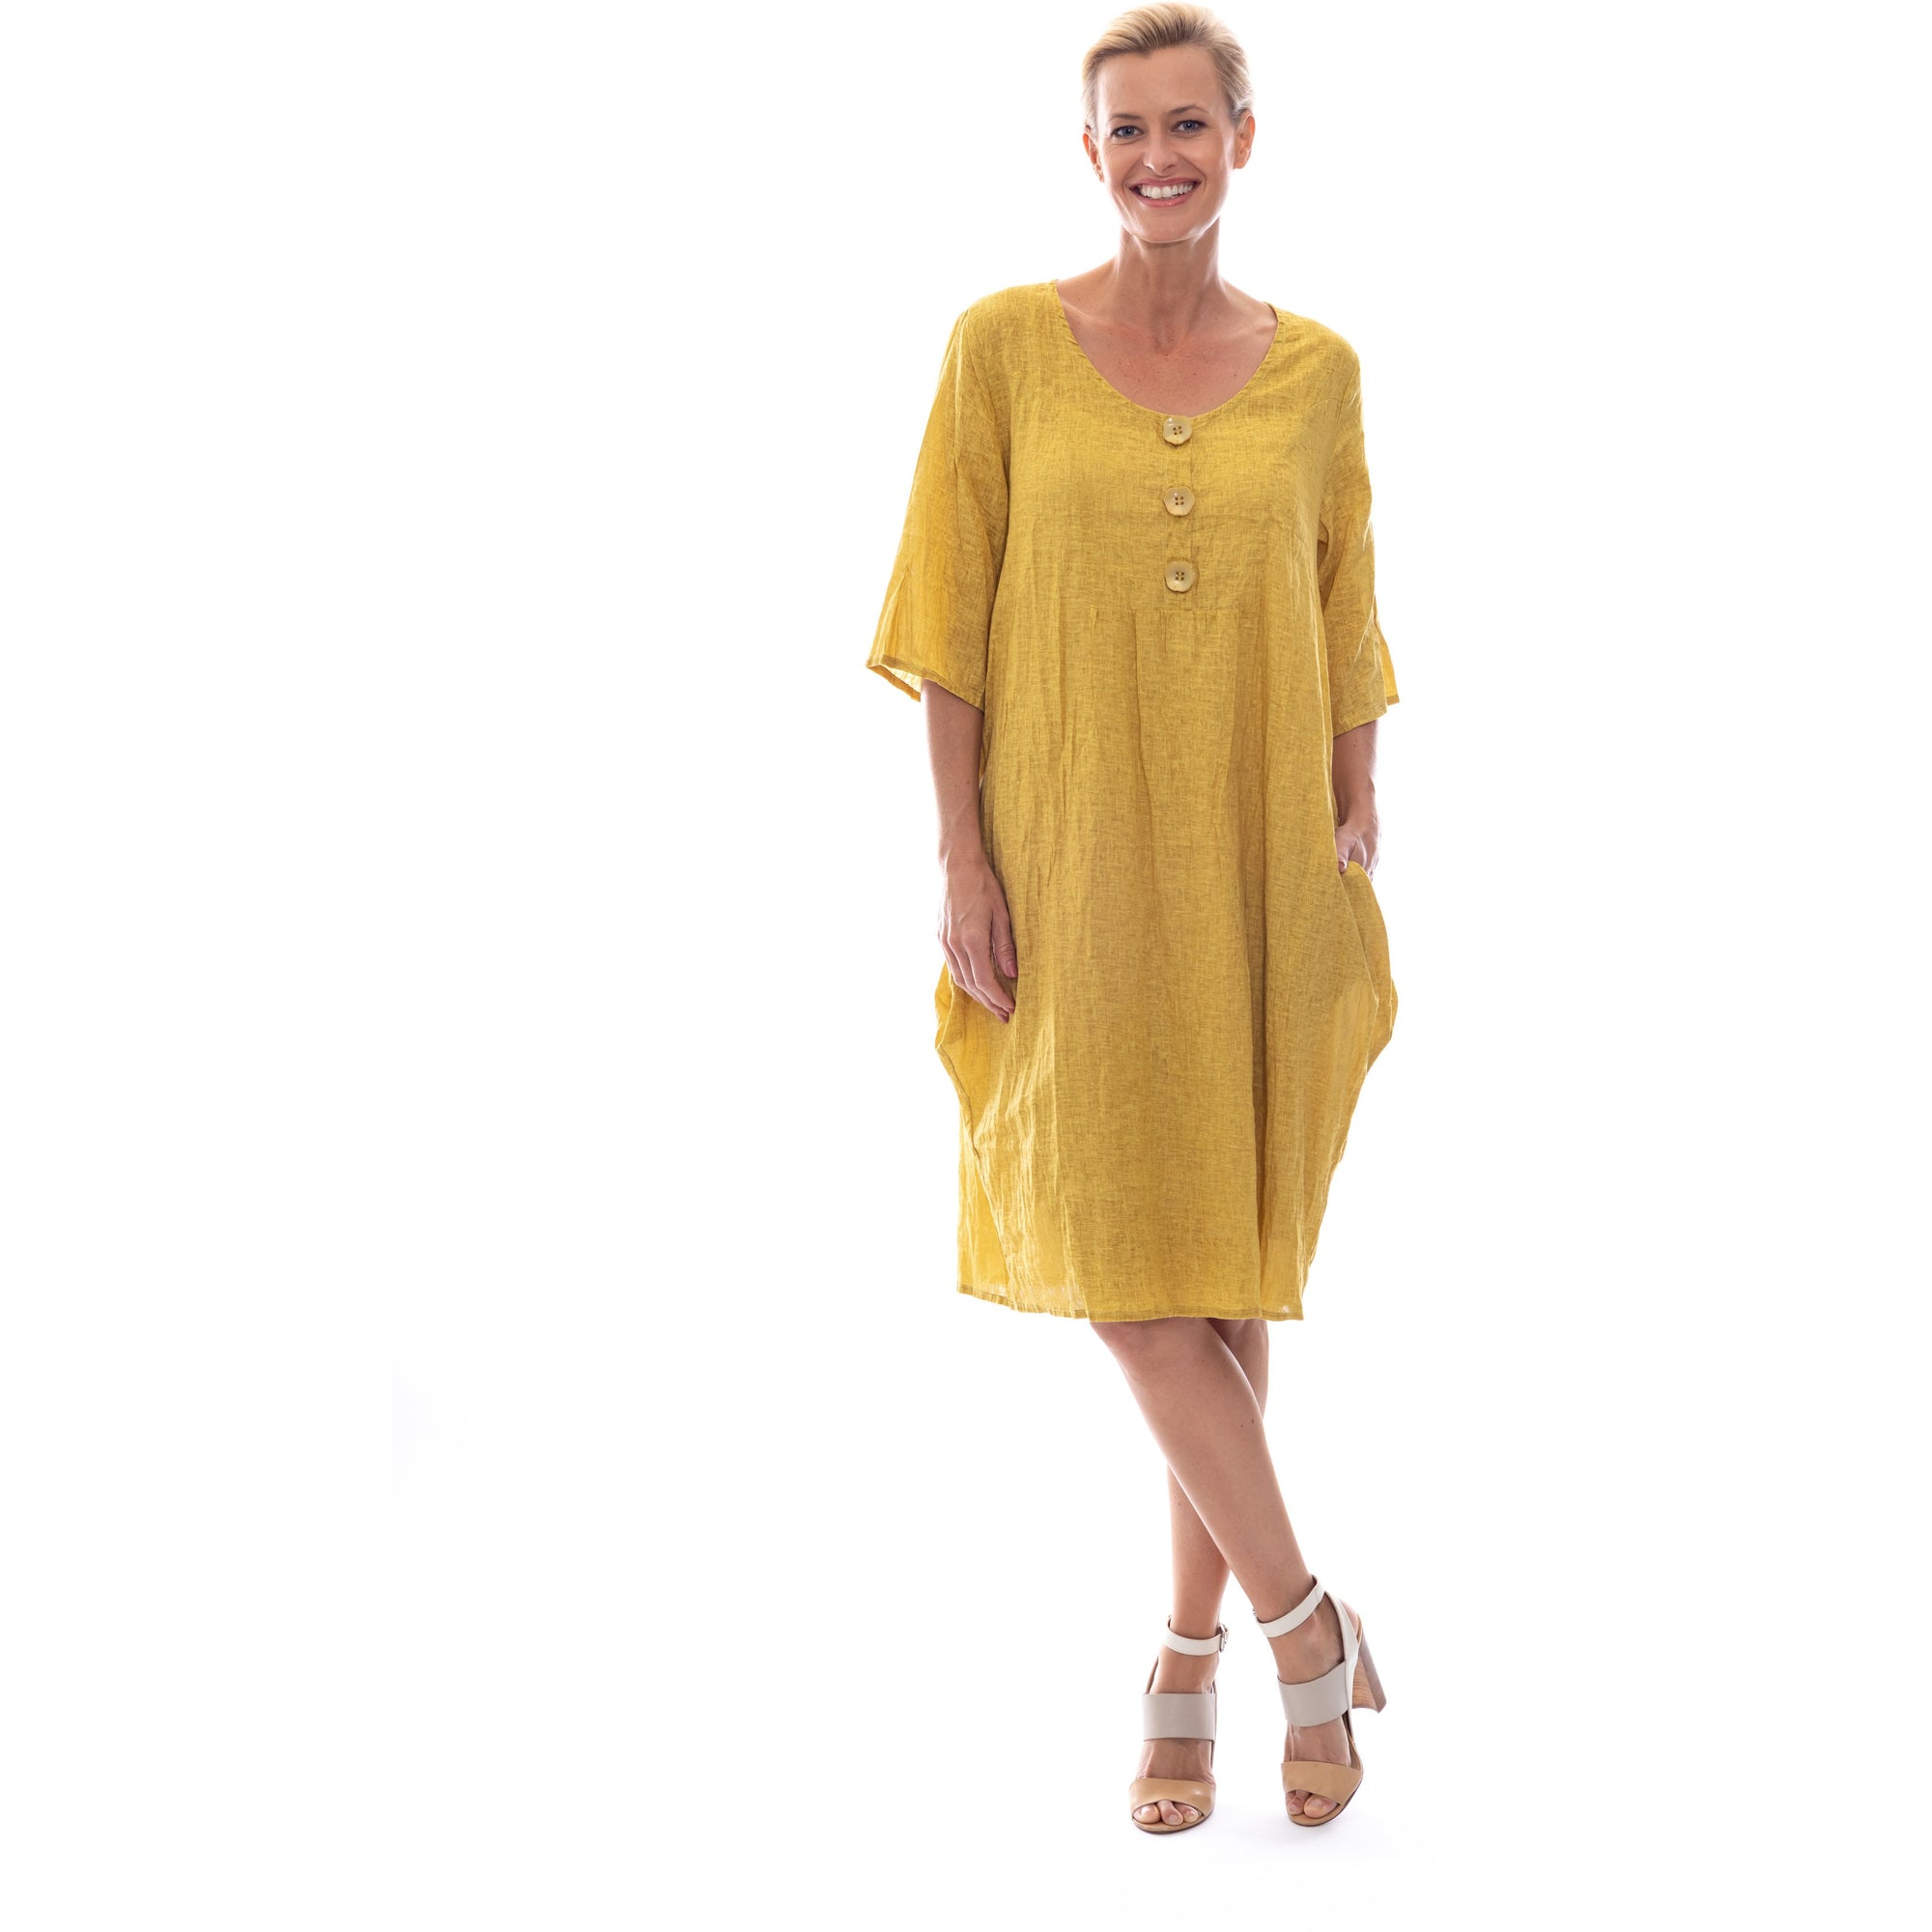 Sequel by Cafe Latte Dress in Mustard Plain